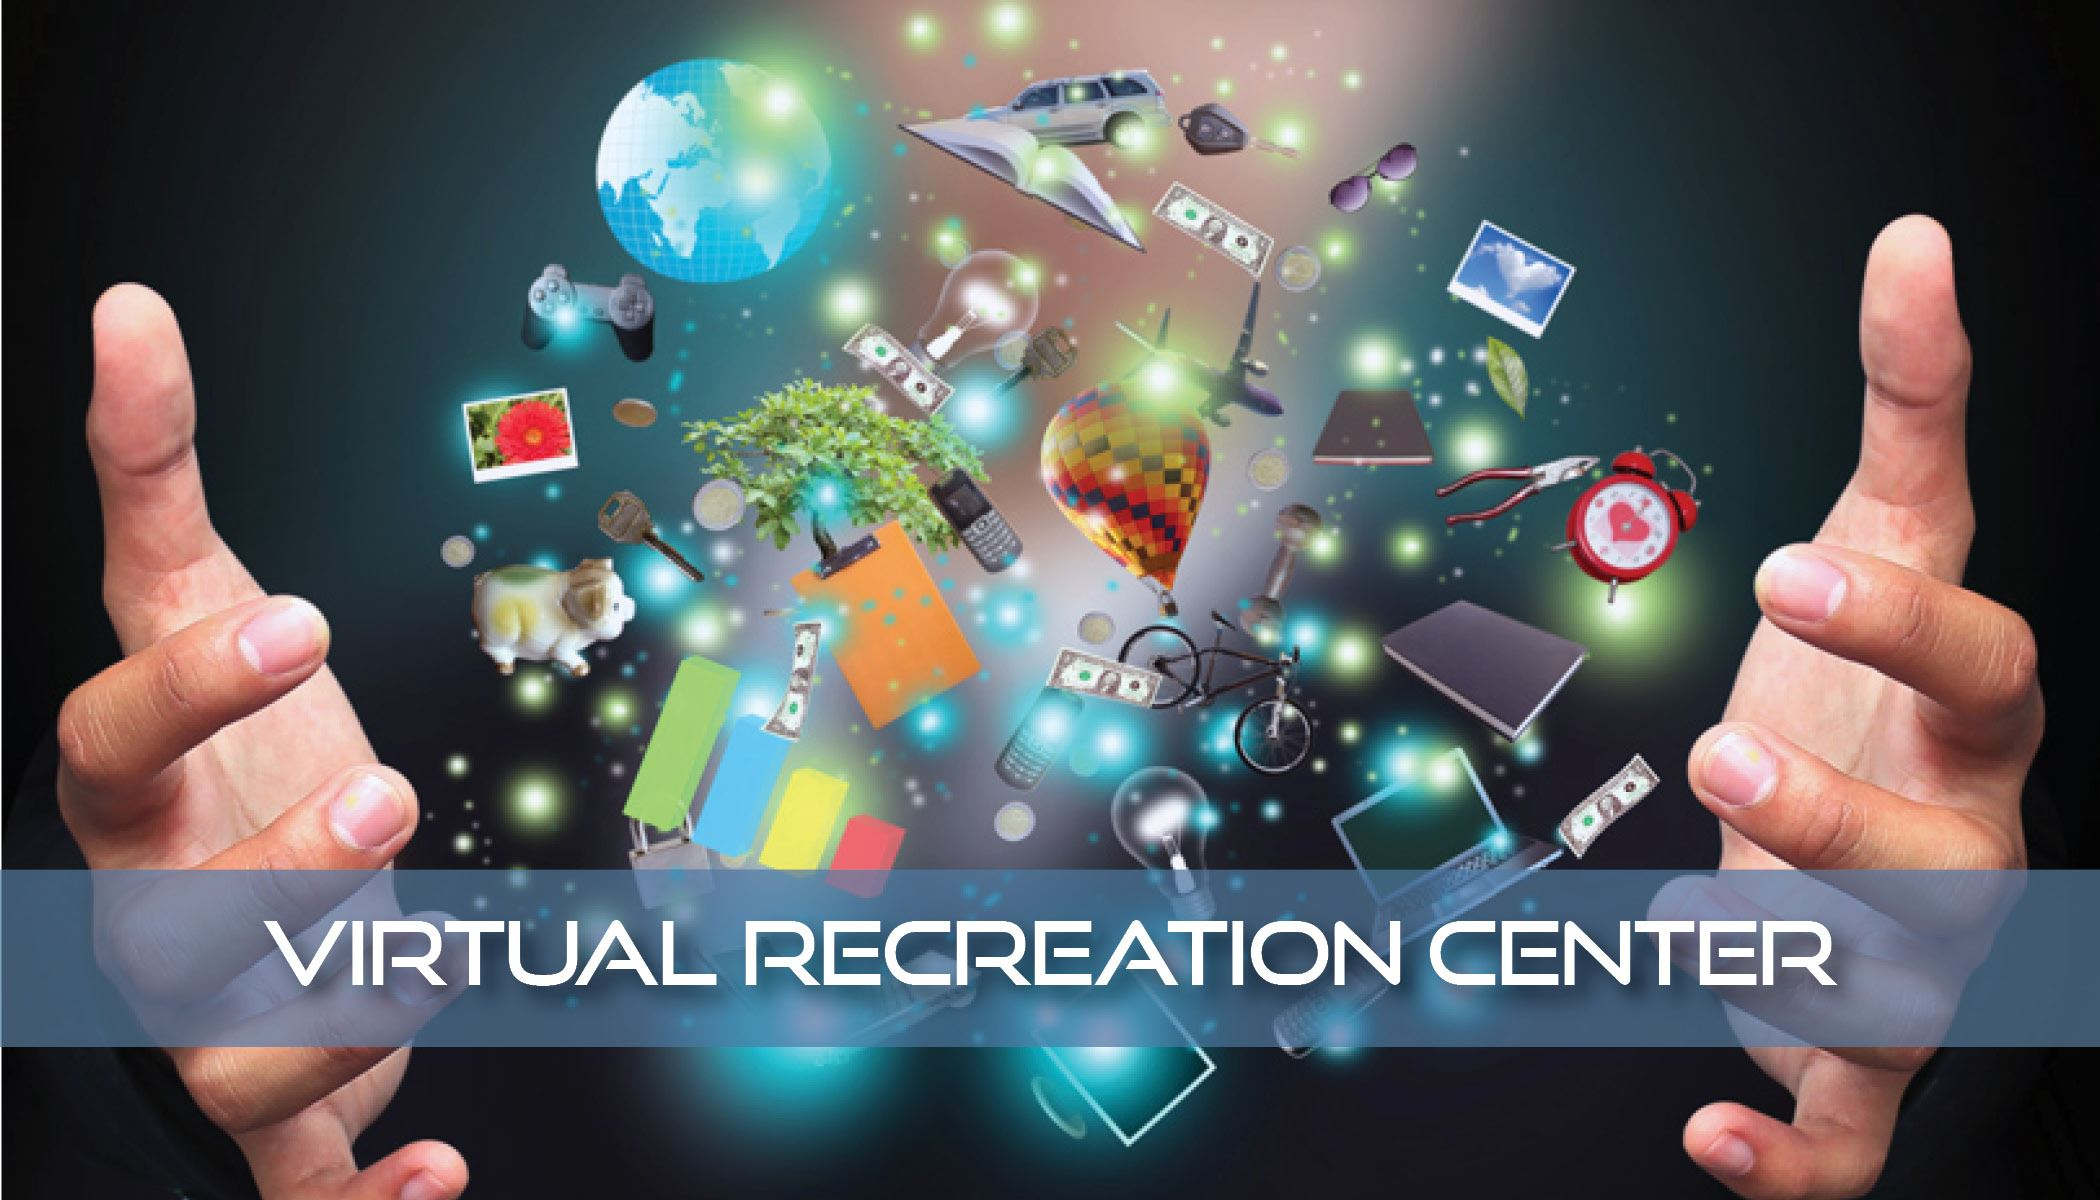 Virtual Recreation Center Text with hands opening digital world filled with objects such as bikes, d